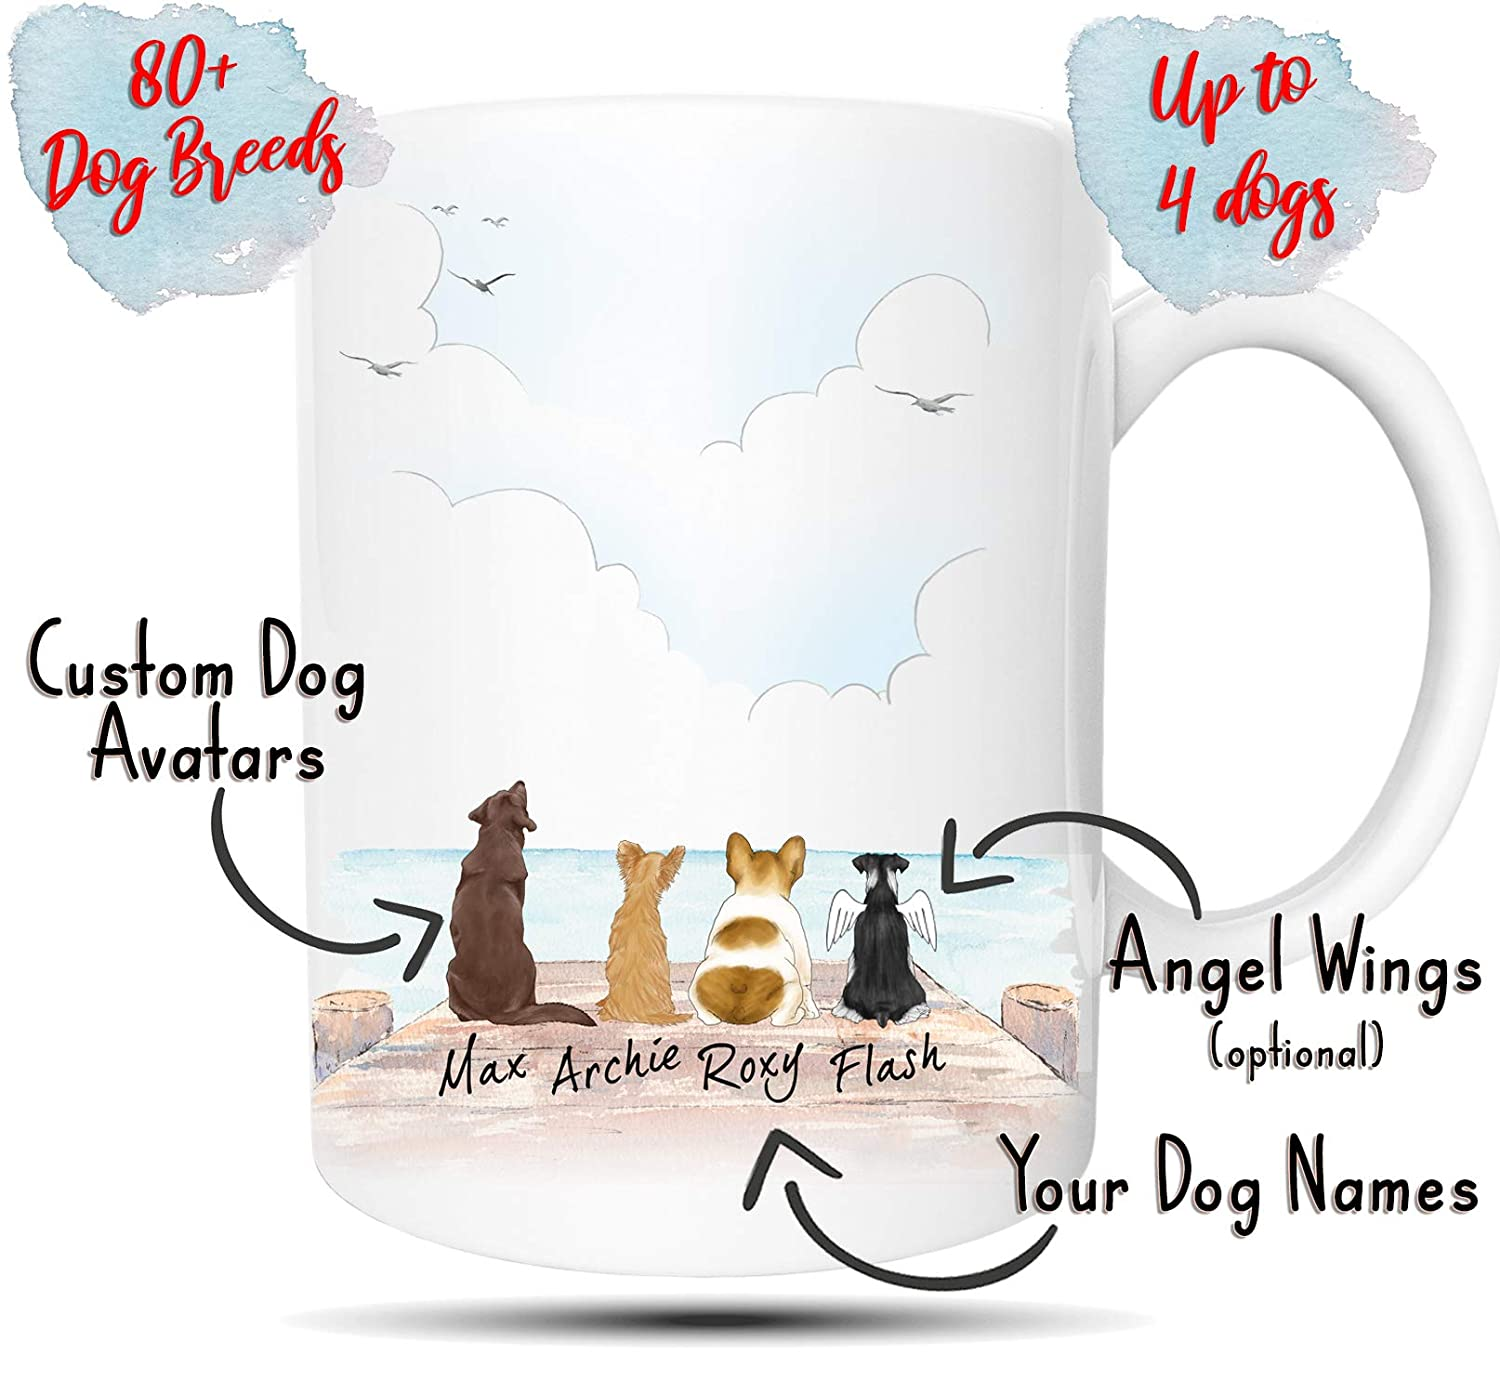 Personalized Dog Mug - Customizable Pet Name and Picture Custom Coffee Mug  - Perfect Gift Idea For Dog Lovers, Fur Mom or Dad, In Memory of Fur